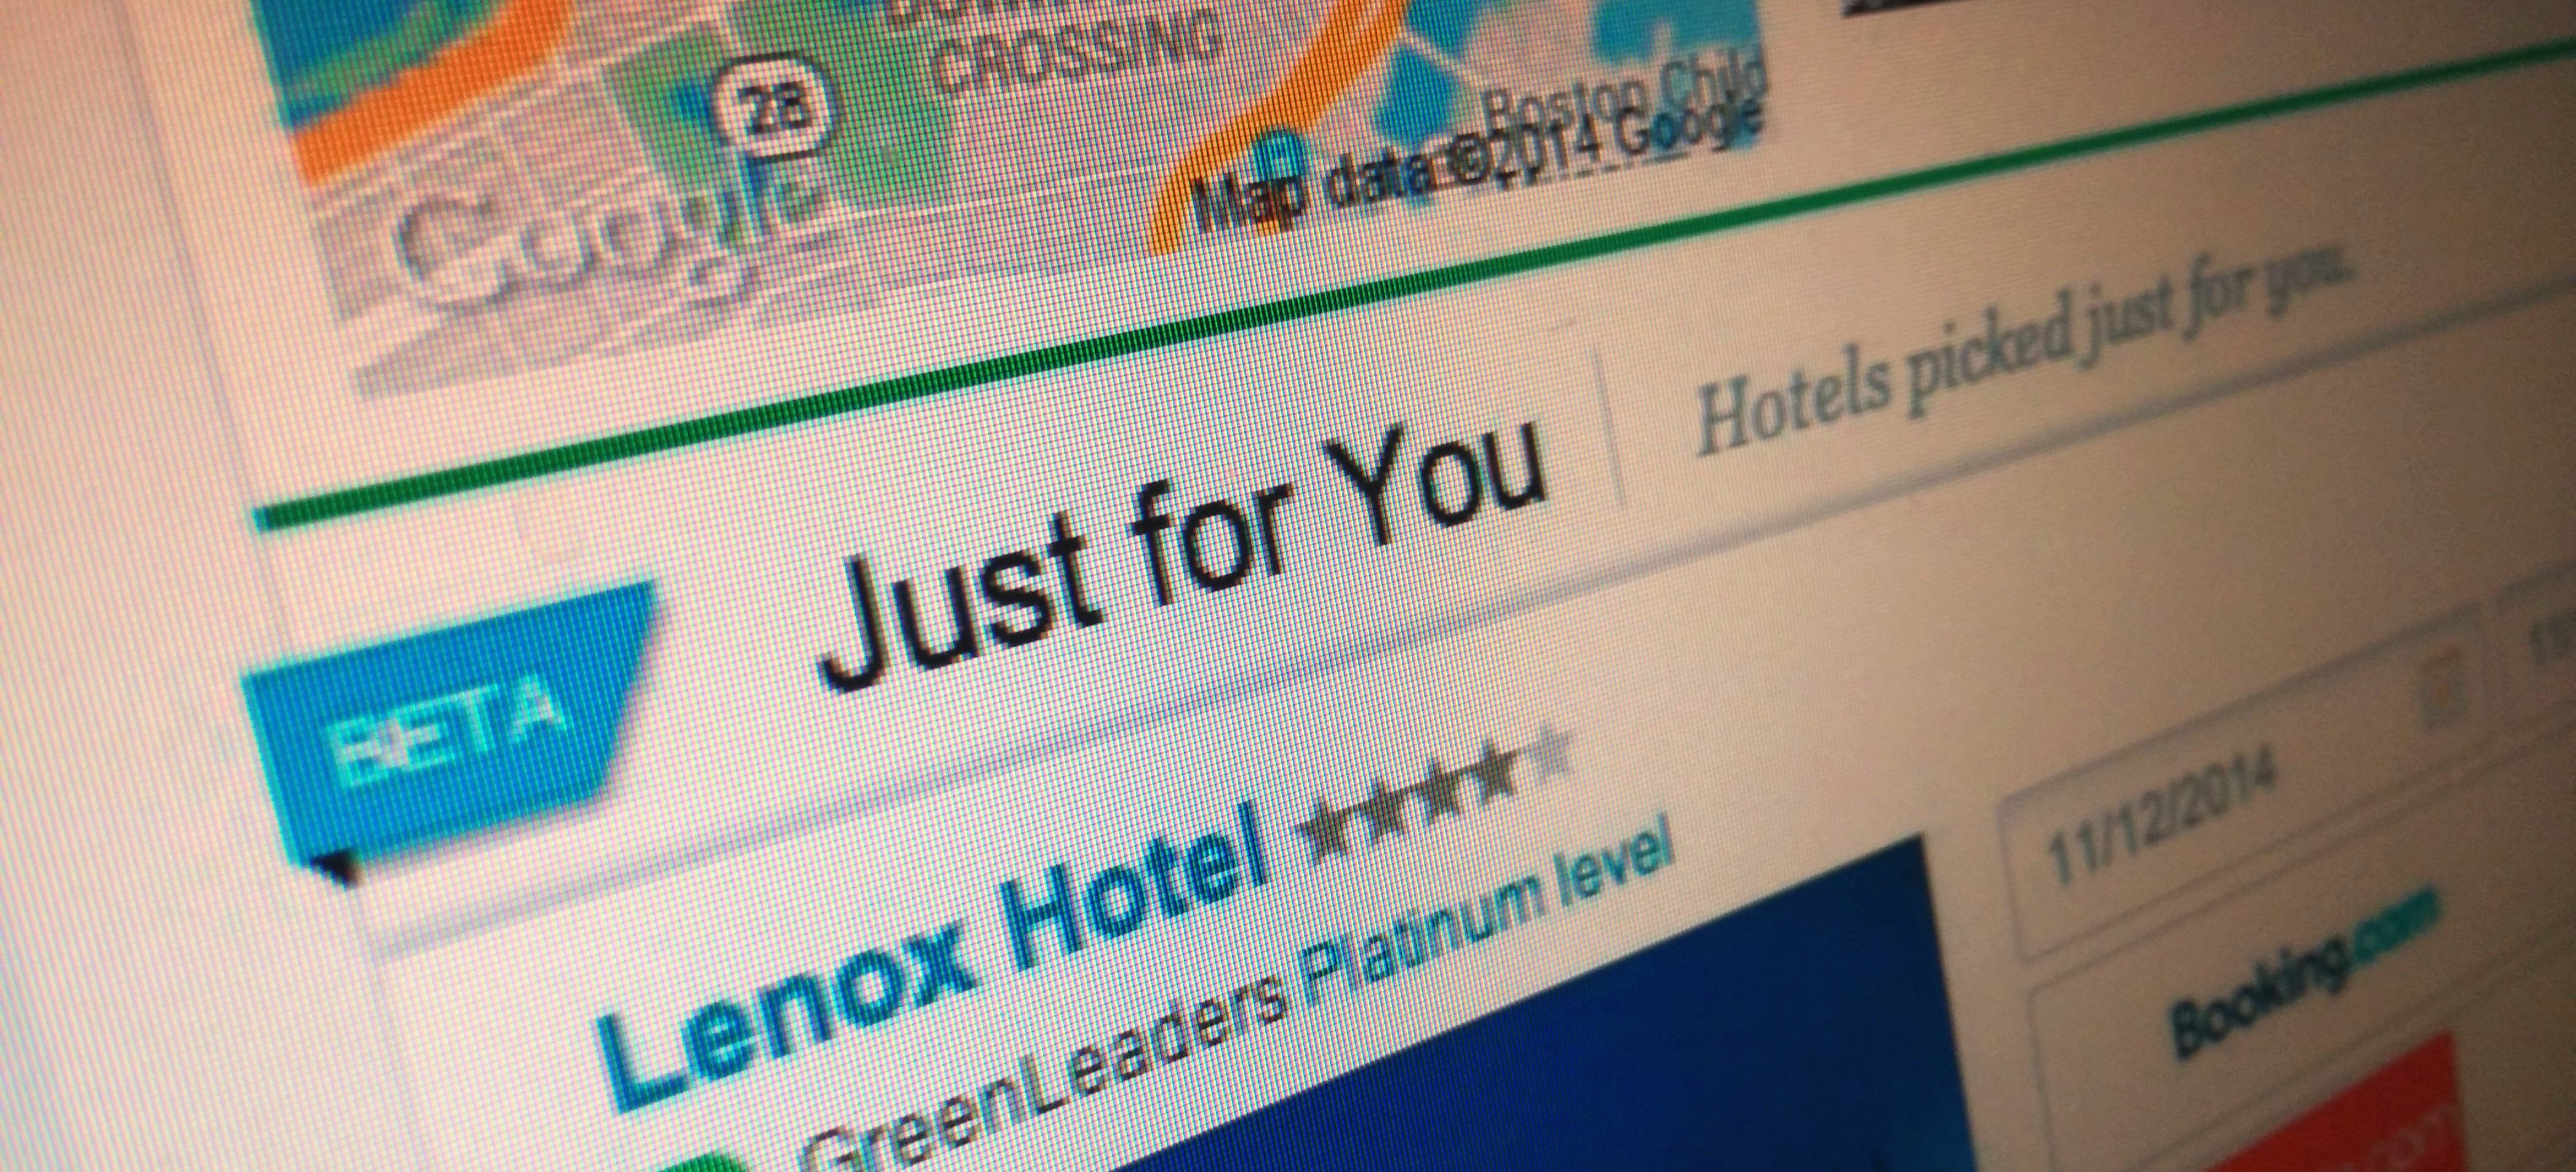 TripAdvisor Launches 'Just for You' Recommendations